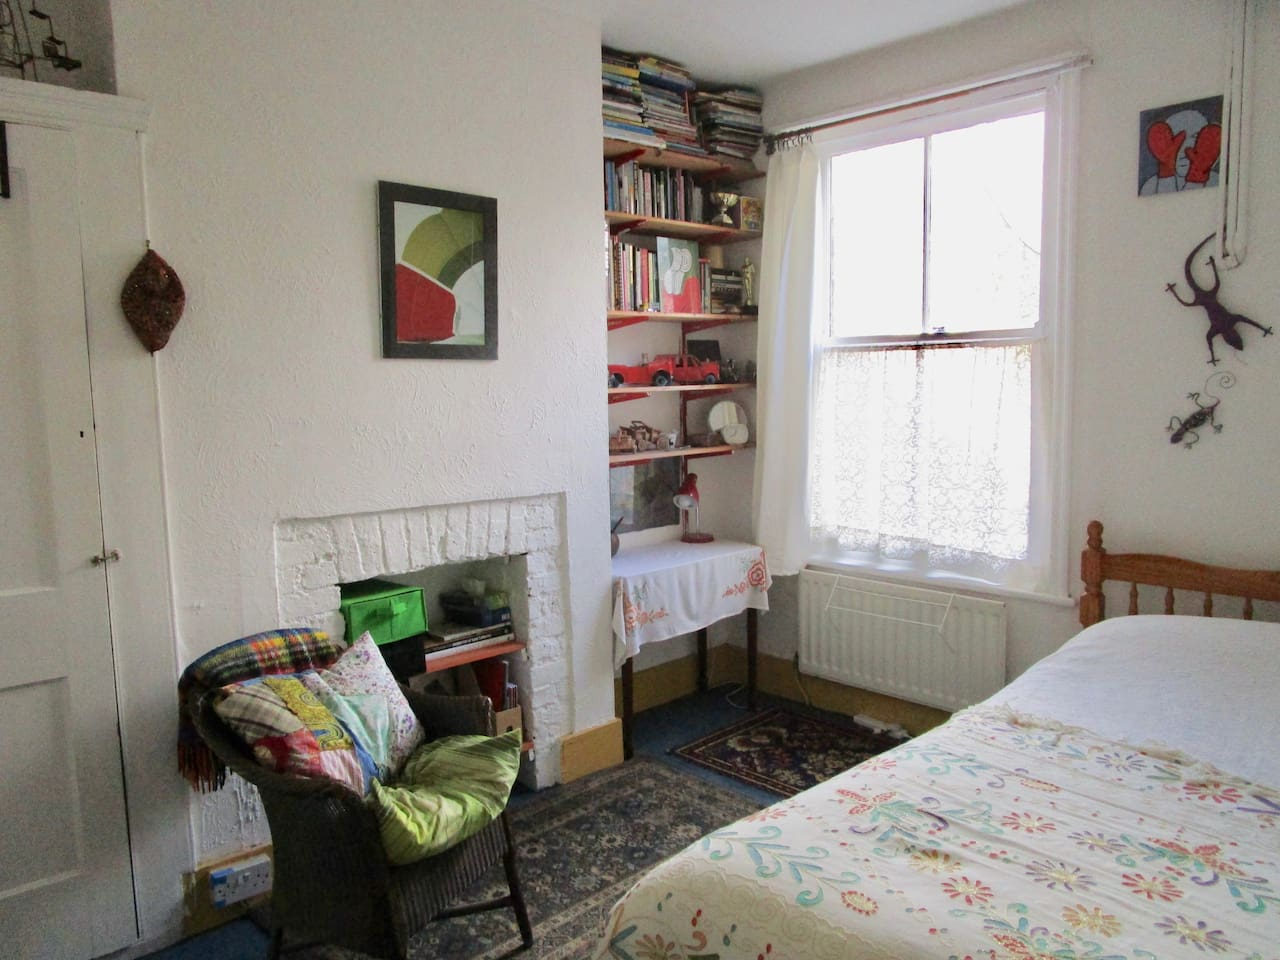 This is a bright, comfortable double bedroom with space to work and relax.